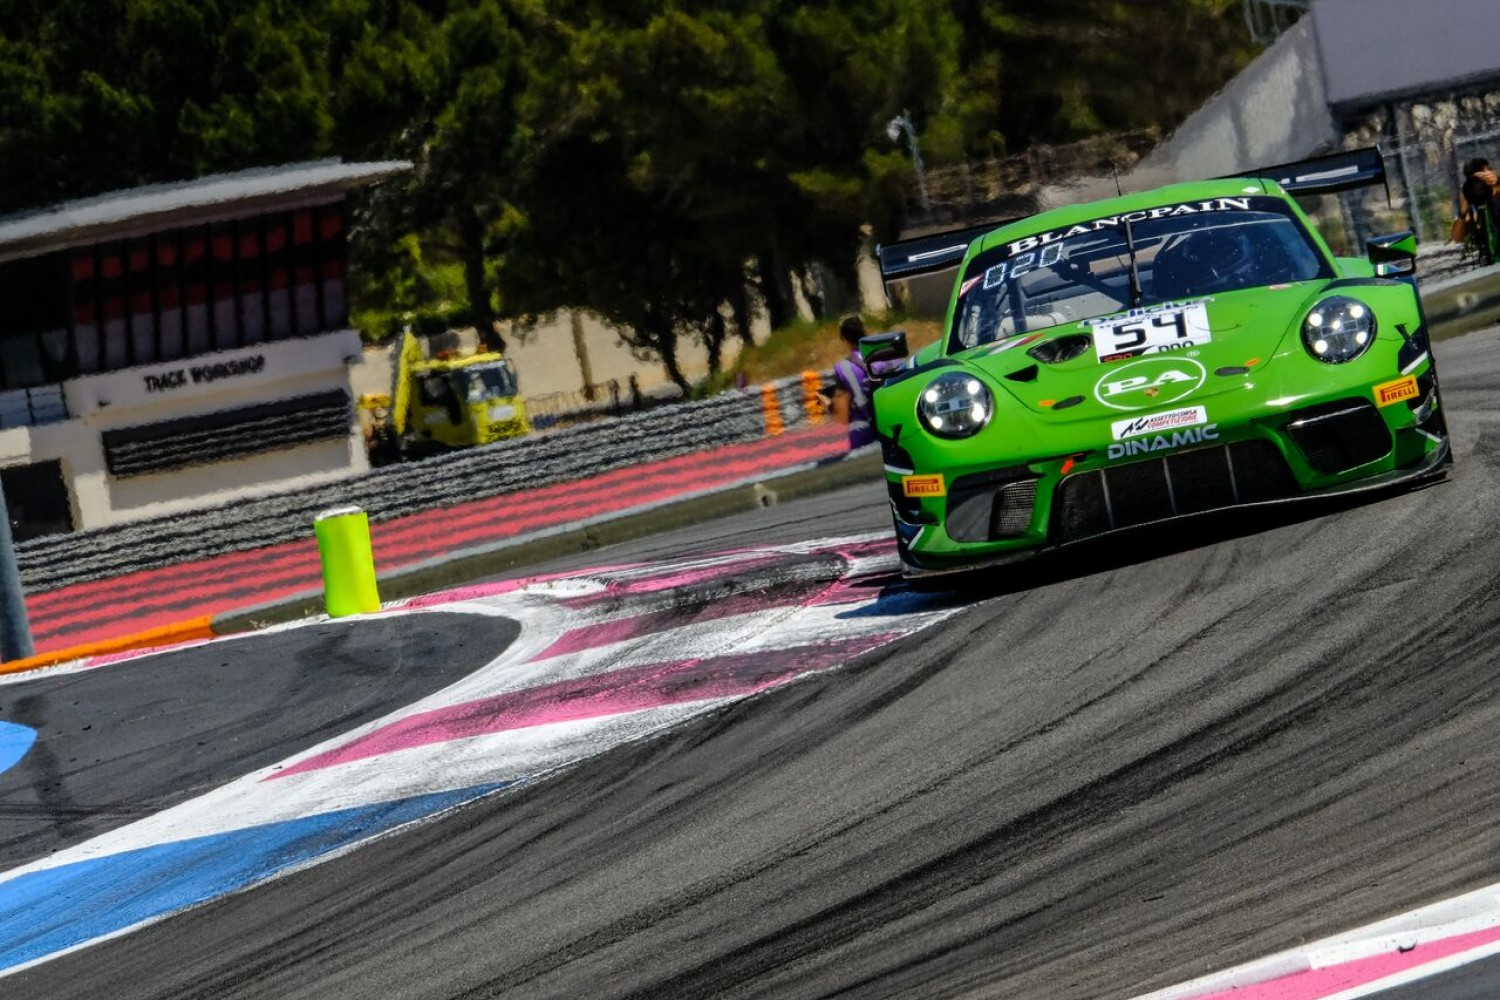 Dinamic Motorsport hits the front in free practice as Bachler shows rapid pace aboard #54 Porsche